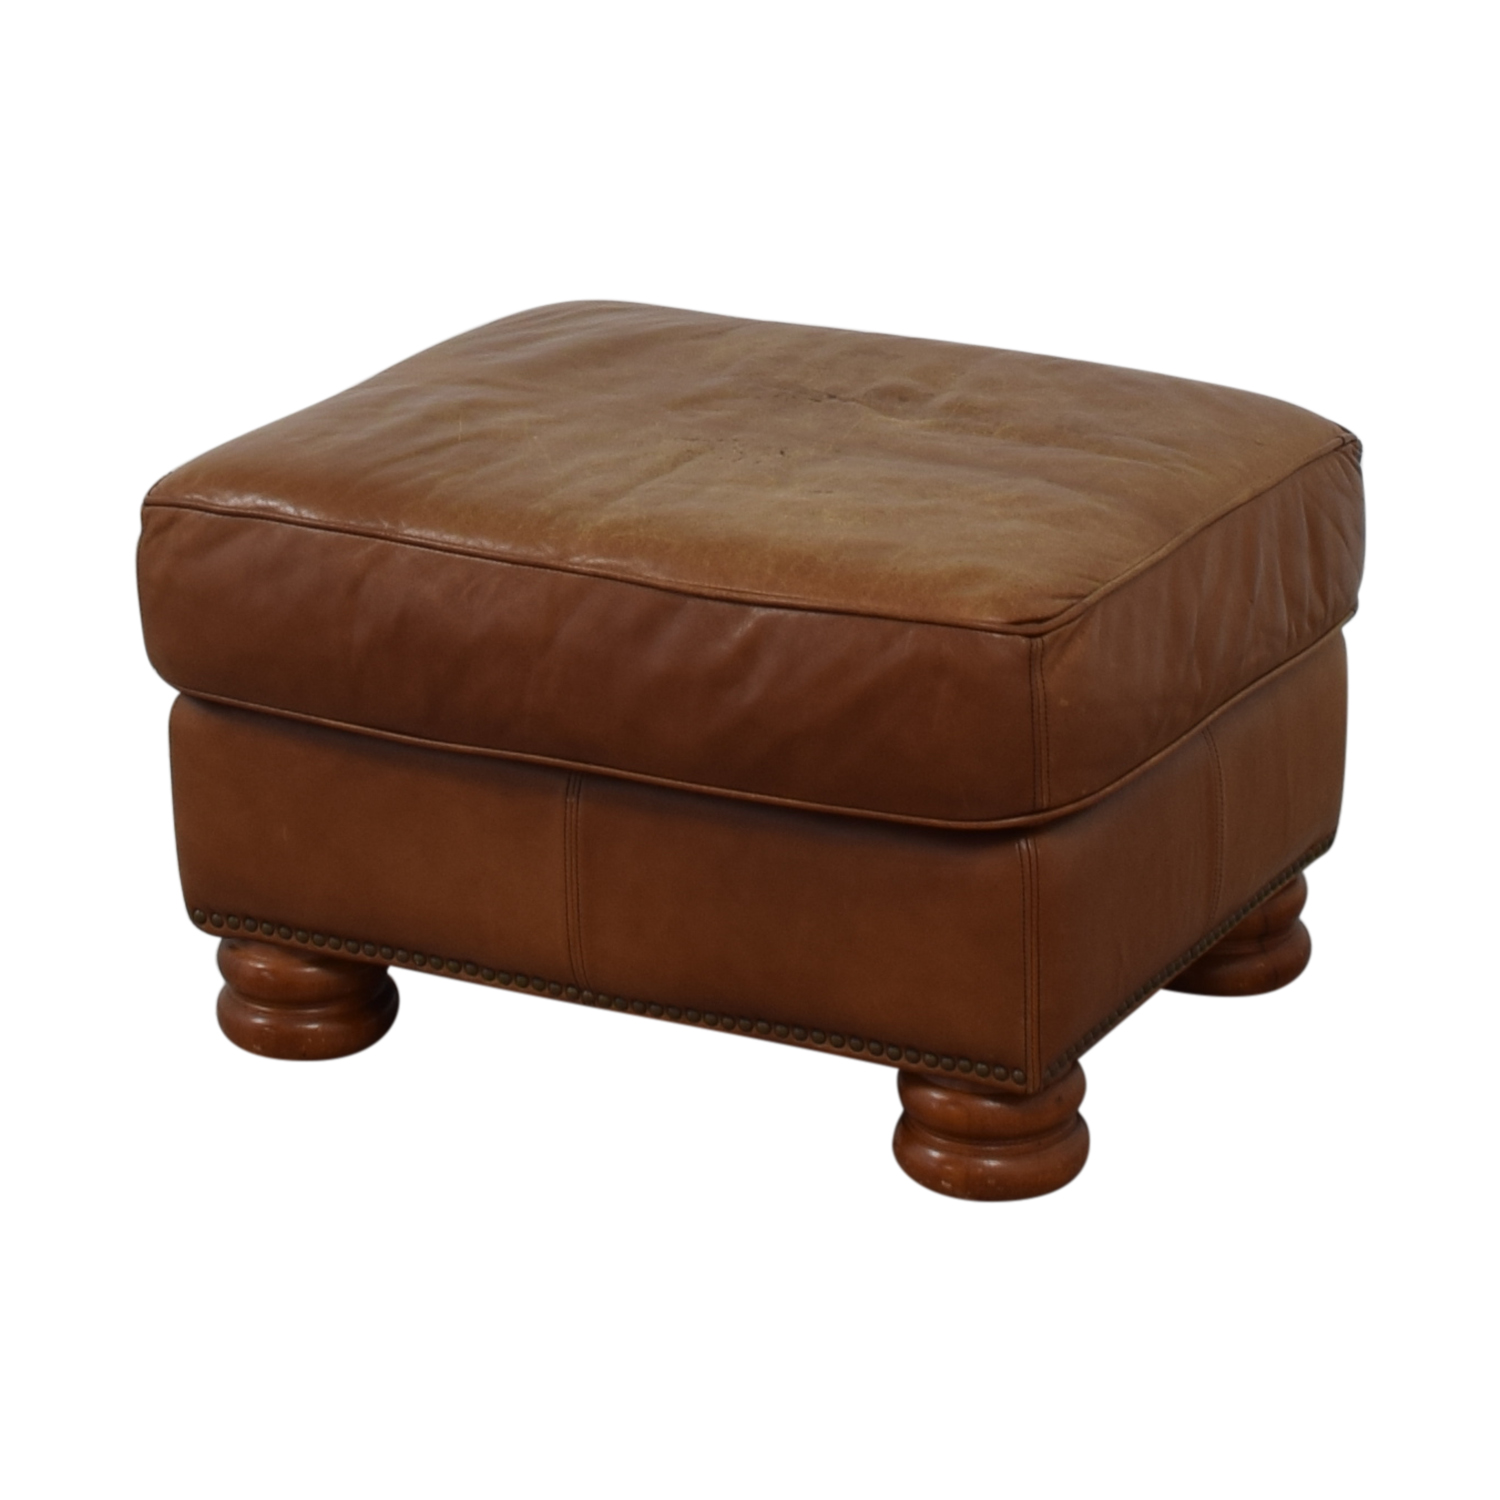 Thomasville Thomasville Brown Leather Ottoman nj